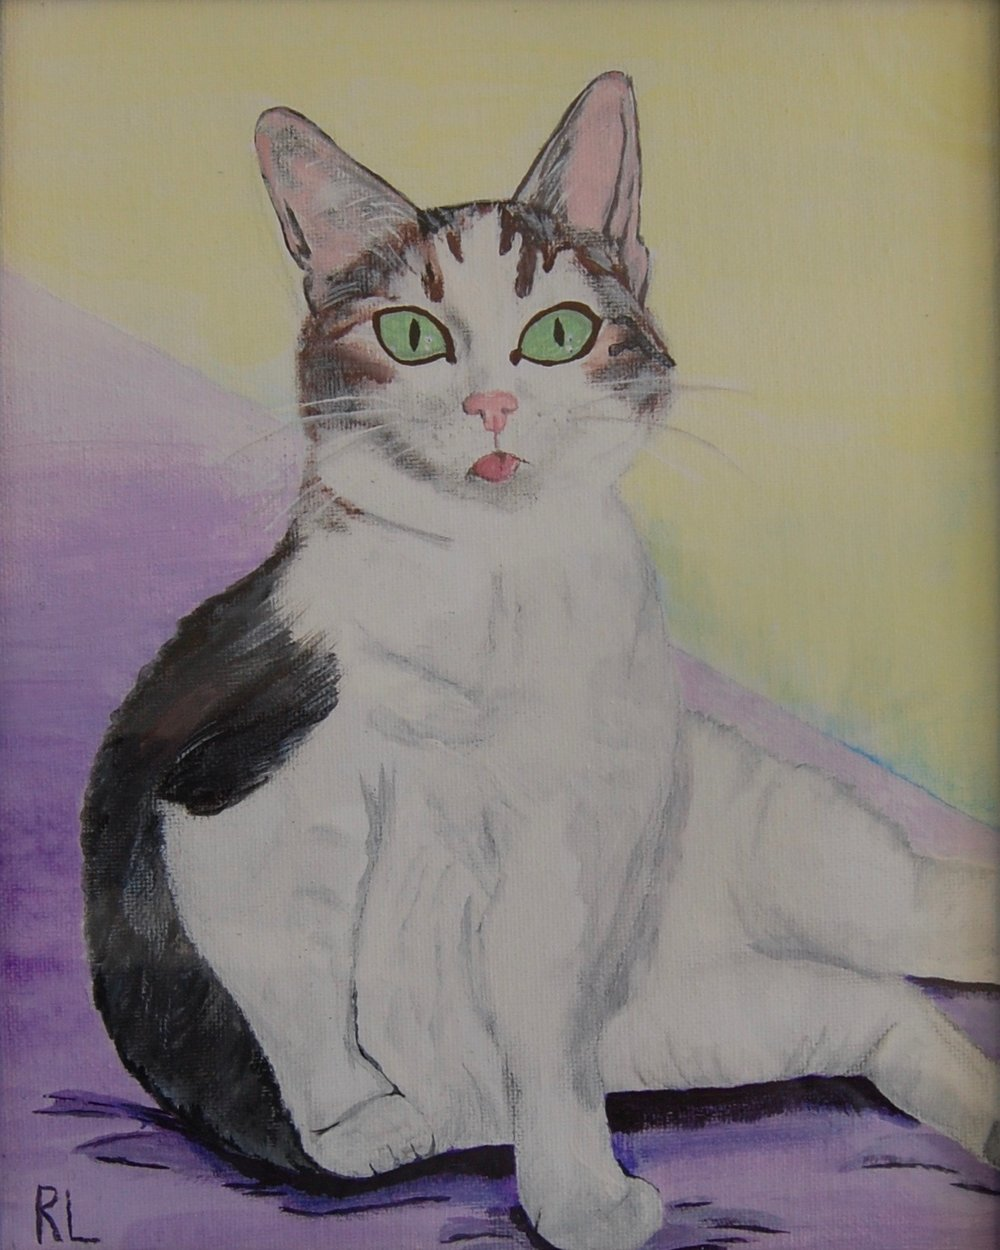 Adeline was also featured in our recent art show located at the Cat Town Cafe and her lucky adopter will also get to take home her likeness in a lovely art piece to commemorate the occasion.